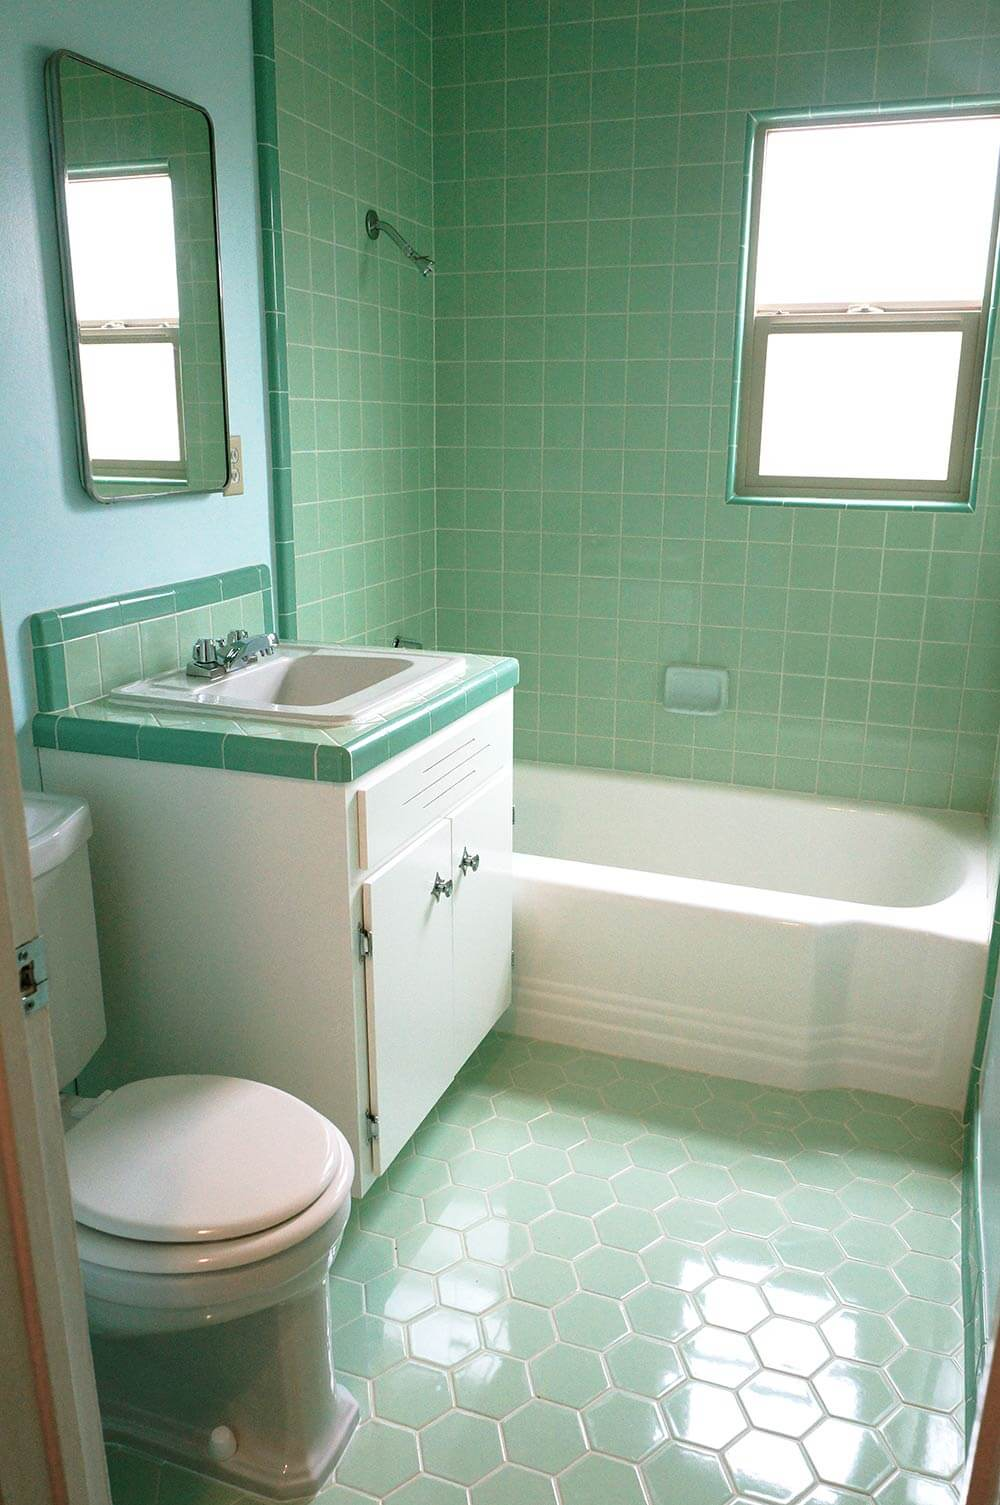 The color green in kitchen and bathroom sinks tubs and for Bathroom decor light green